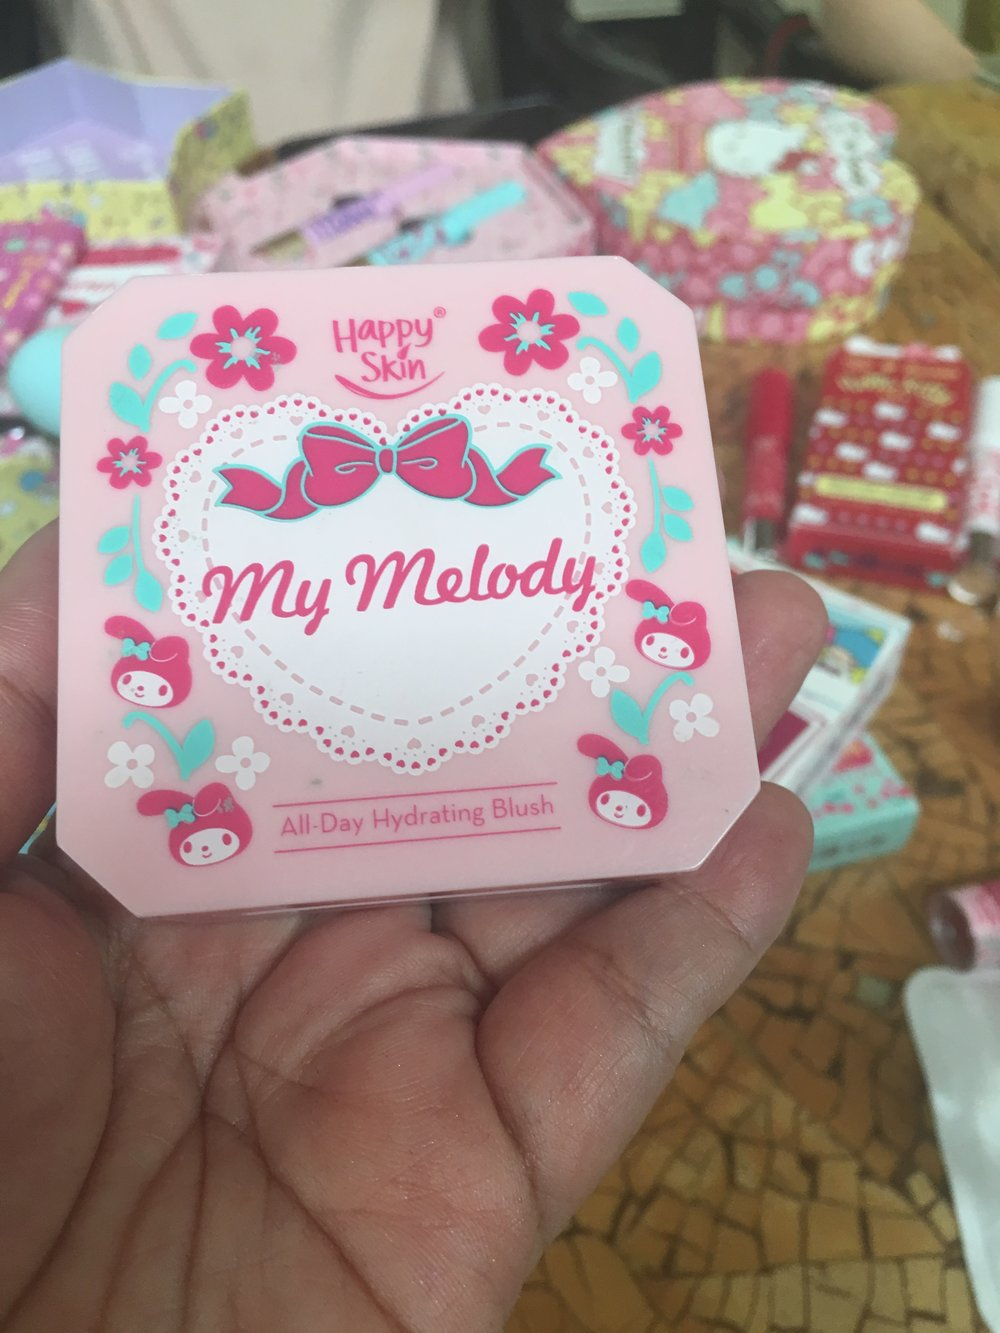 An actual closer look at the cute packaging of Happy Skin's My Melody All-Day Hydrating Blush